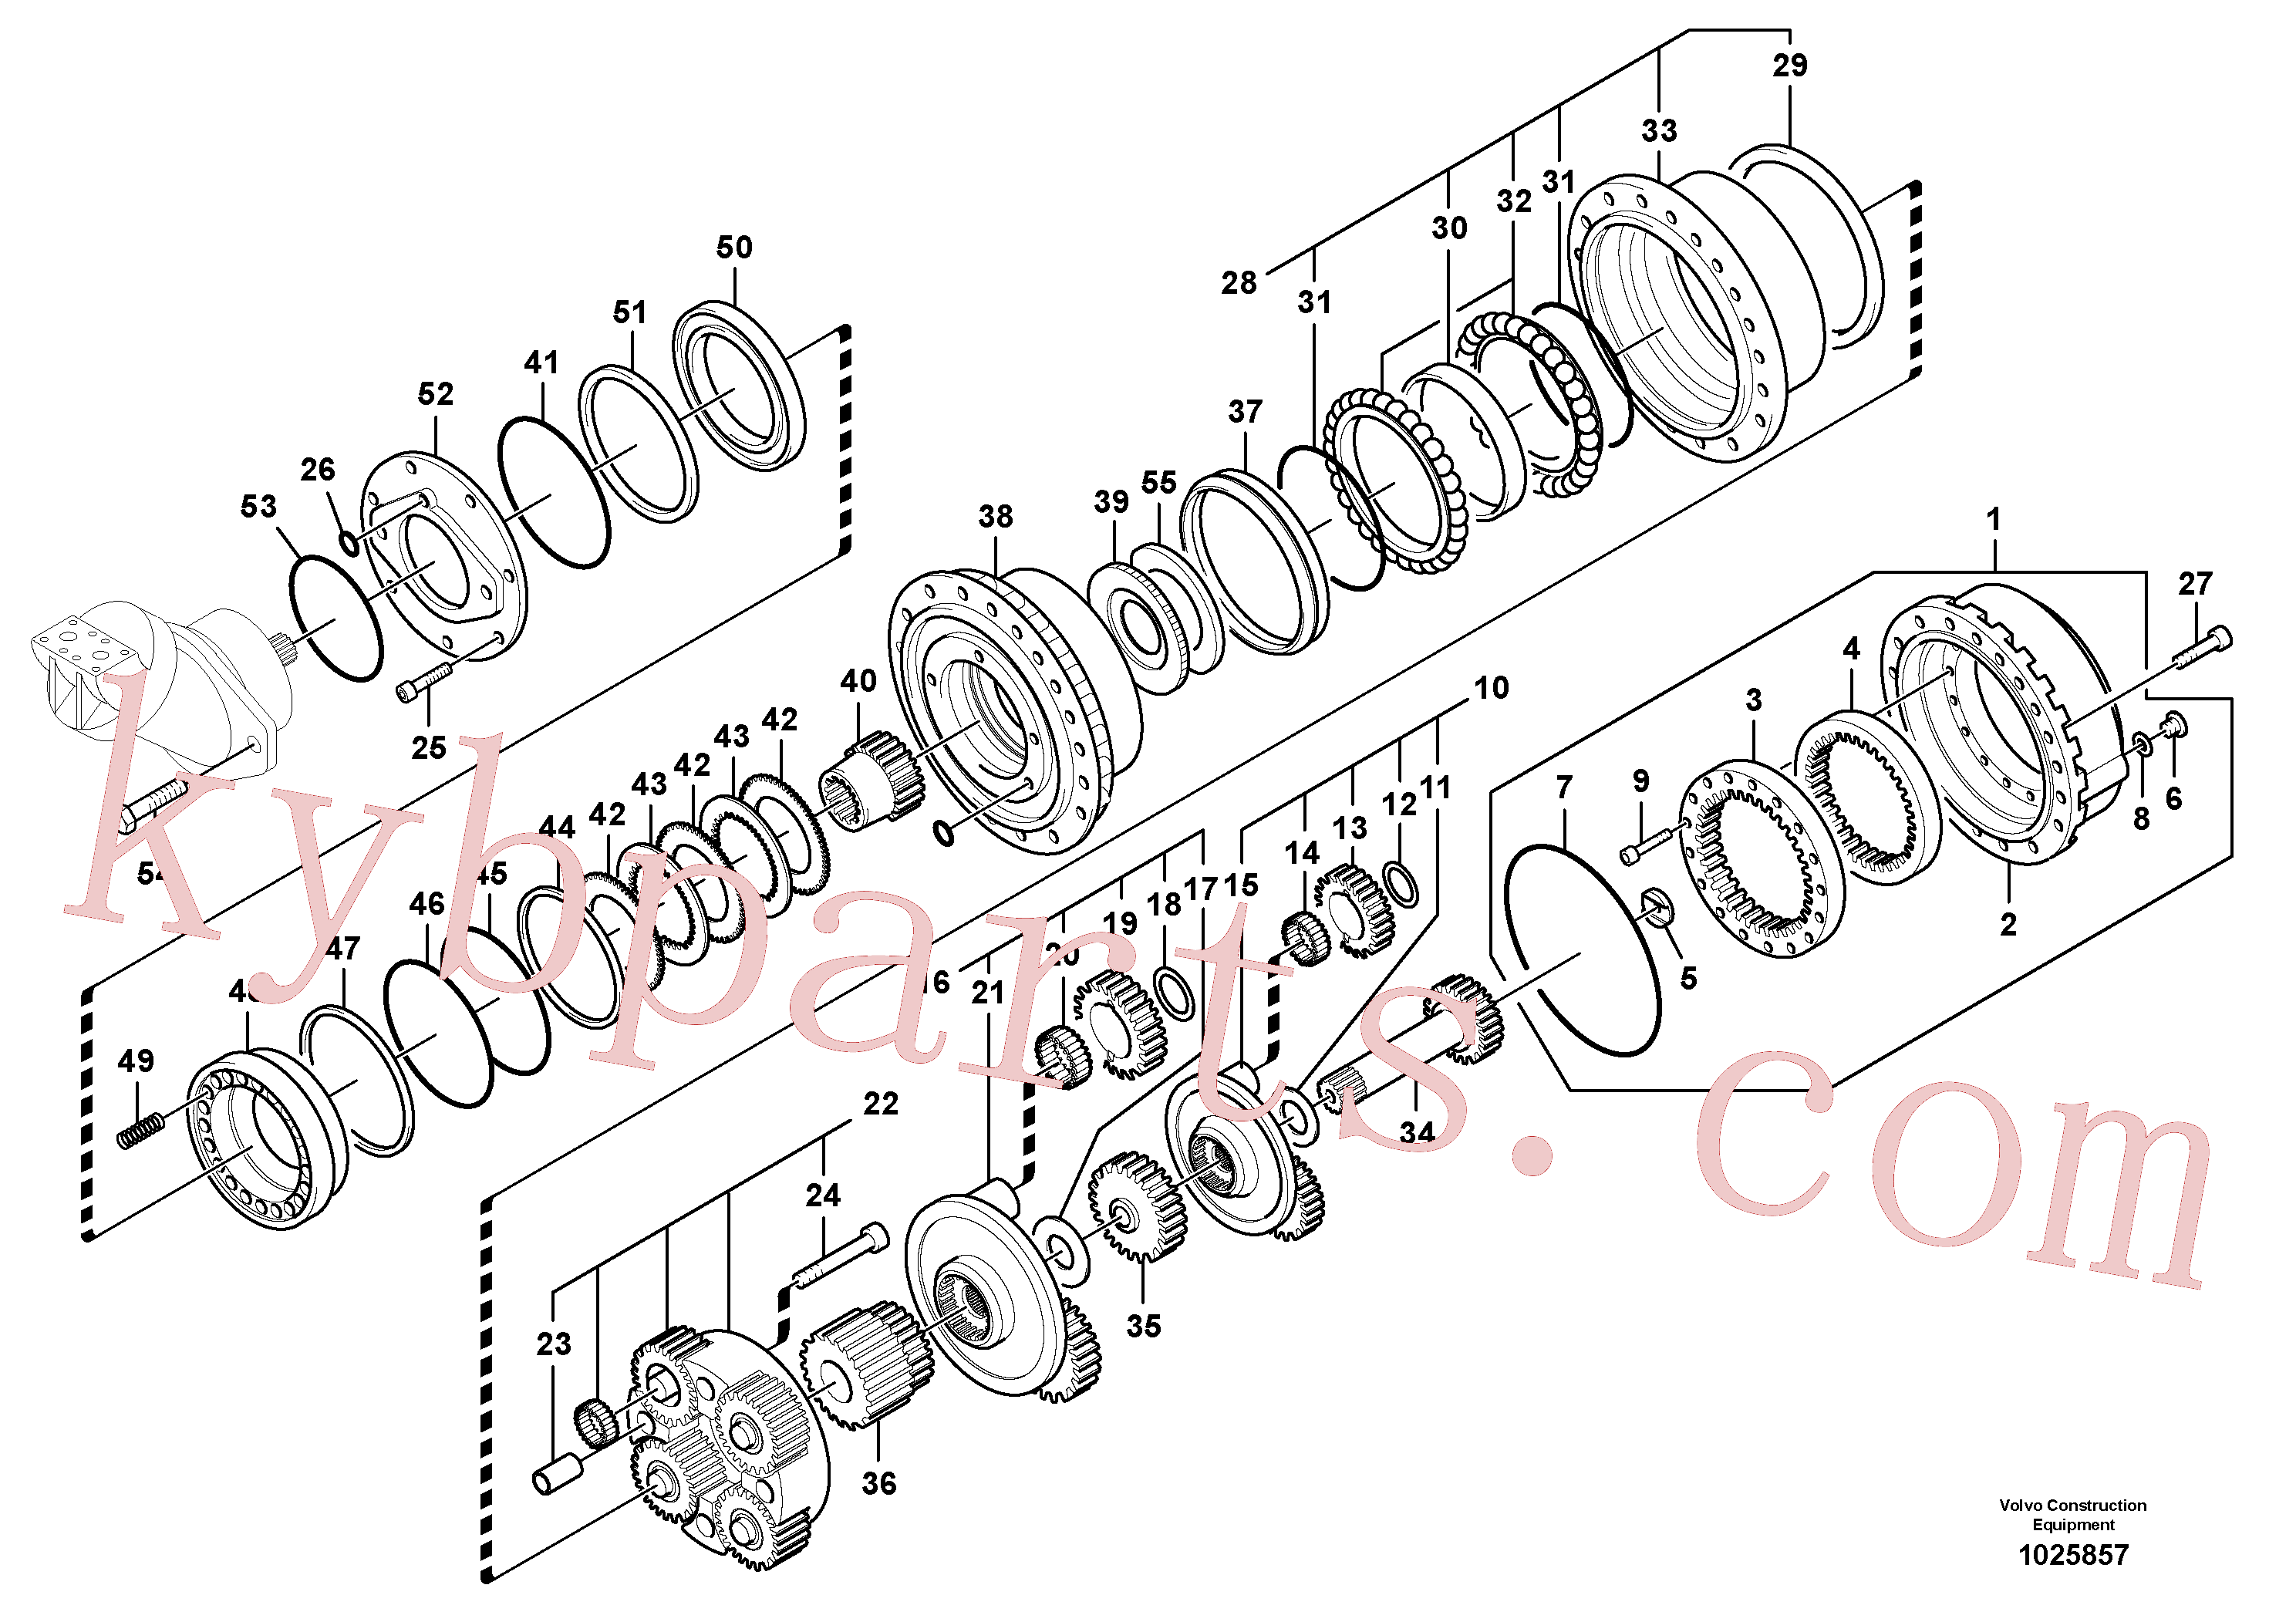 SA8230-35430 for Volvo Travel gearbox(1025857 assembly)